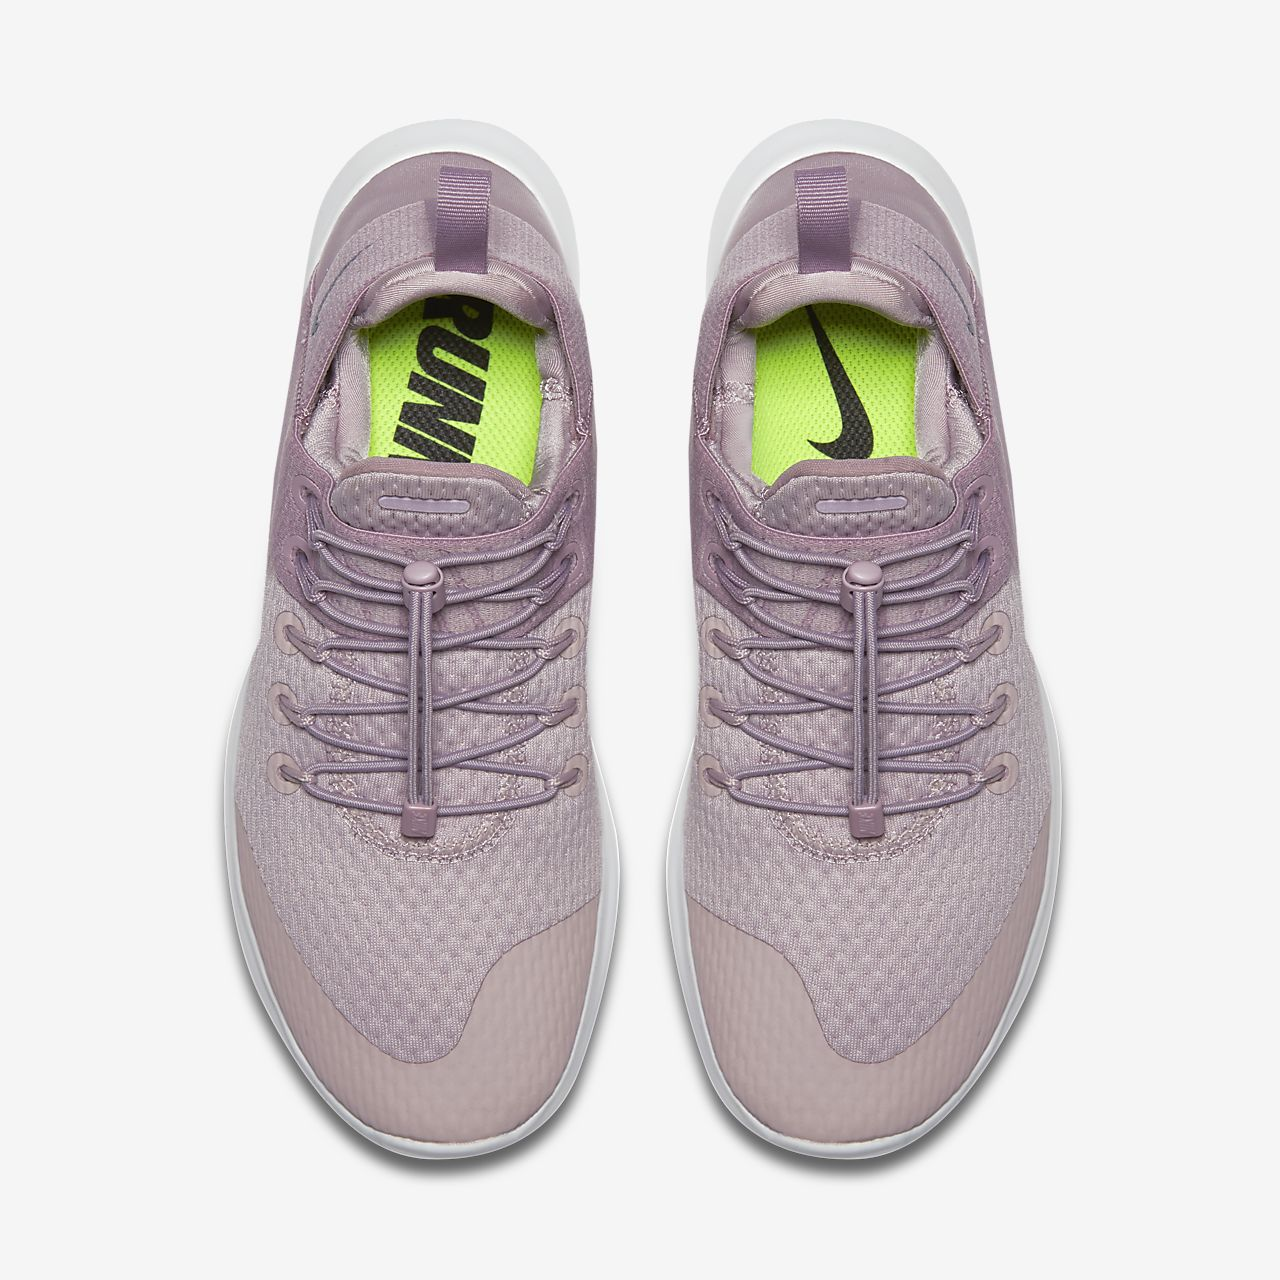 Wmns Nike Free Rn 2017 - Chaussures Pour femmes / Violet Nike 0QcSv